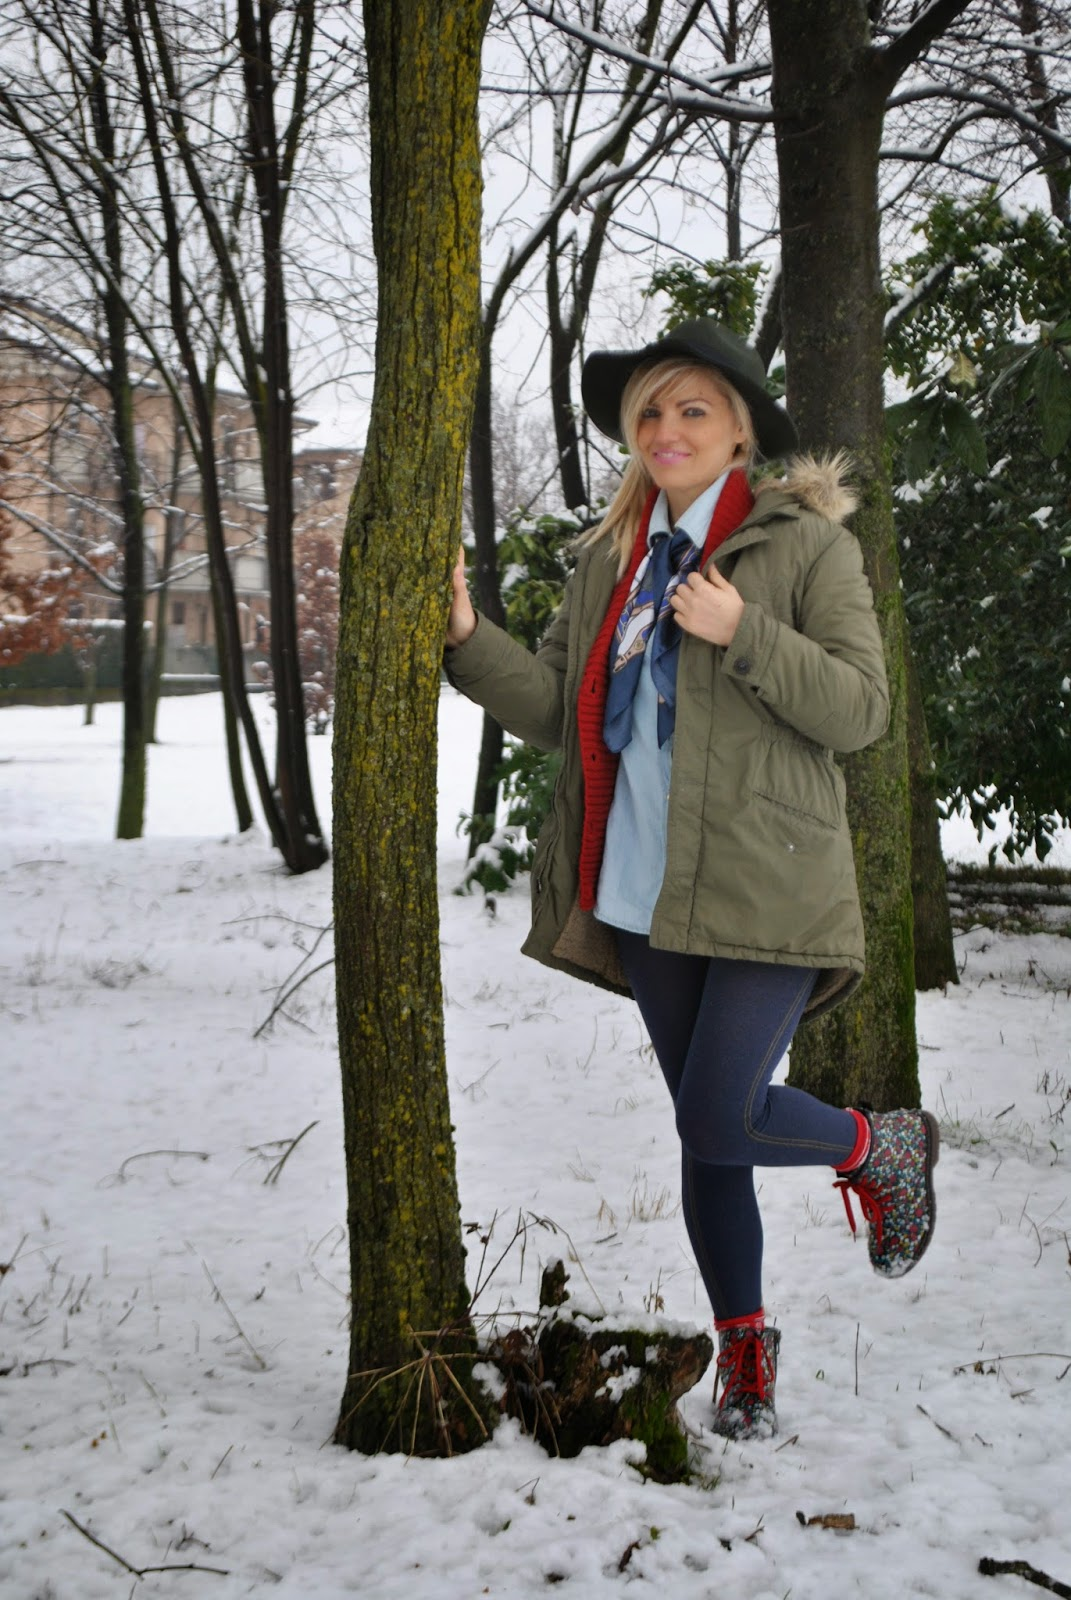 outfit parka benetton verde militare cappello fedora verde outfit skinny jeans outfit camicia denim outfit cardigan rosso outfit jeans outfit rosso outfit verde militare outfit neve outfit invernali outfit febbraio 2015 abbinamenti parka abbinamenti verde militare abbinamenti rosso abbinamenti camicia denim mariafelicia magno colorblock by felym fashion blog italiani mariafelicia magno fashion blogger winter outfits outfit under the snow outfit parka how to wear parka outfit denim shirt how to wear denim shirt how to wear fedora hat red cardigan outfit  fashion bloggers italy blonde girl blondie ragazze bionde occhi blu blue eyes  orologio daniel wellington daniel wellington watch